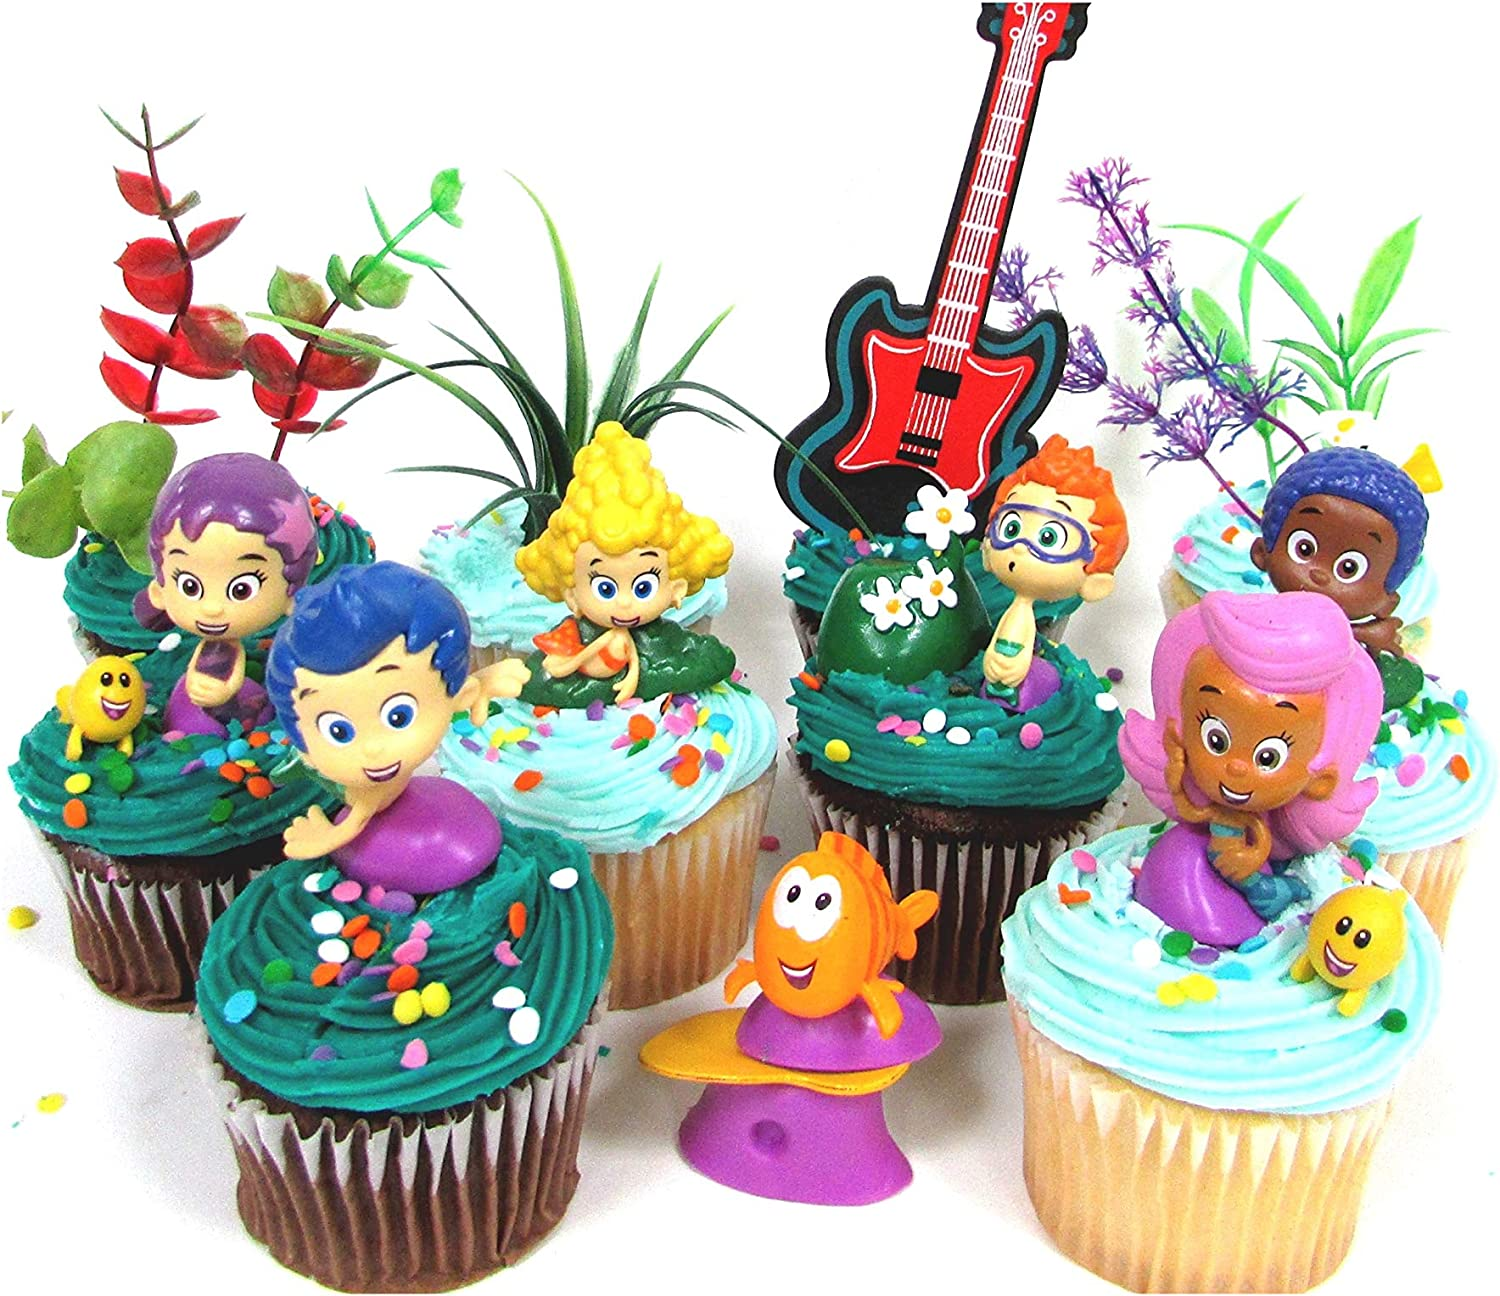 Remarkable Amazon Com Bubble Guppies 19 Piece Birthday Cupcake Topper Set Birthday Cards Printable Trancafe Filternl